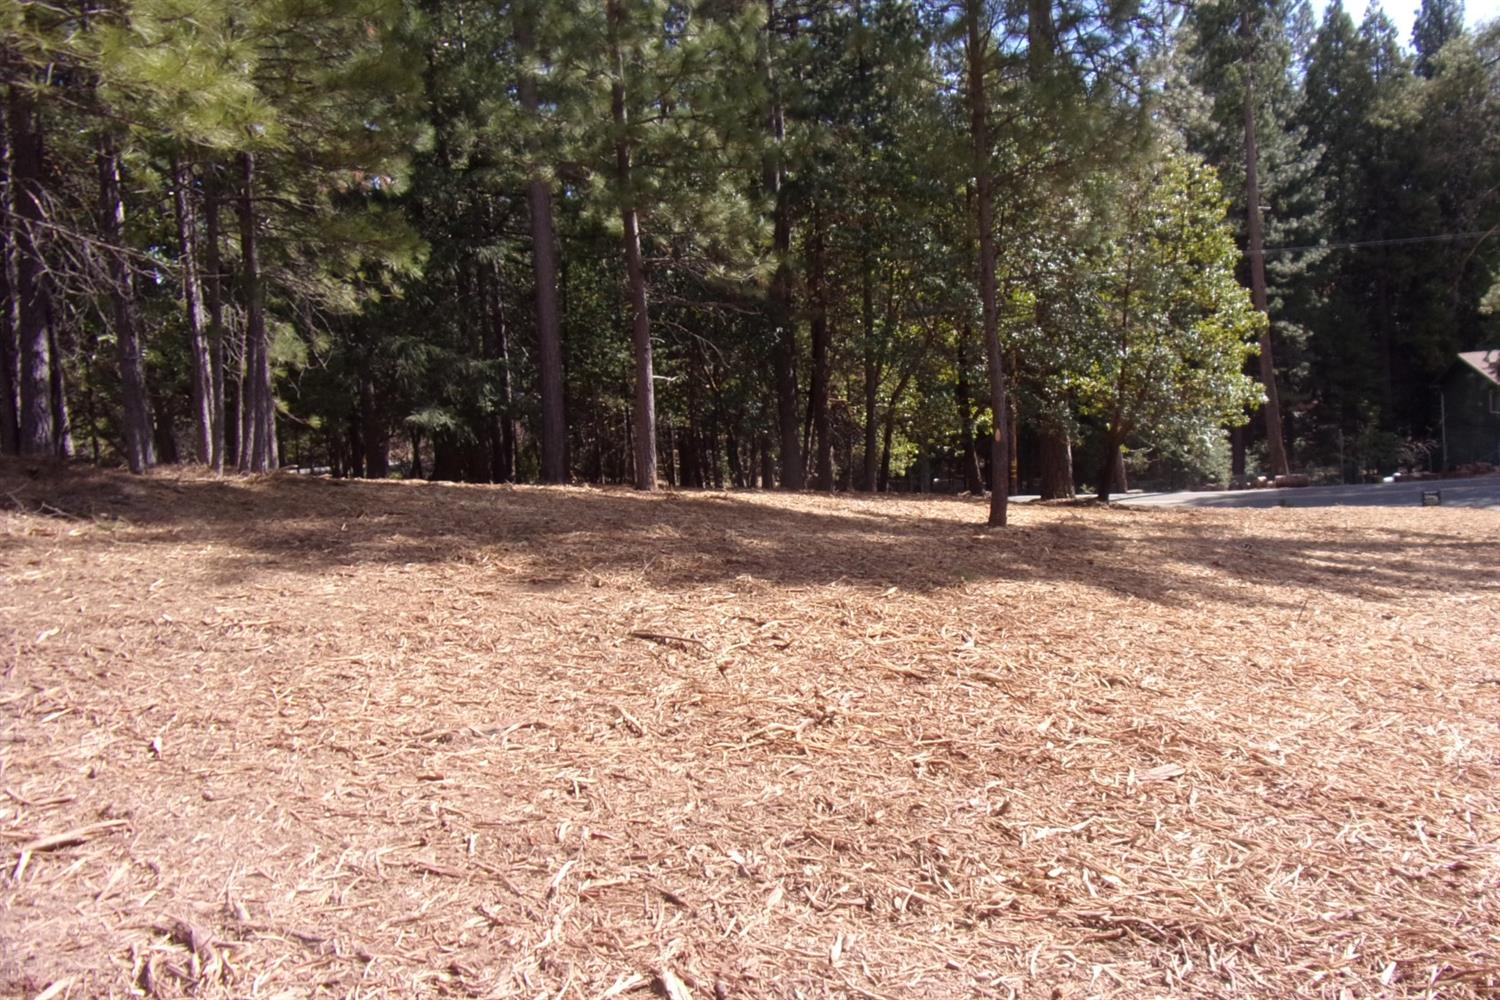 Nice corner lot in popular neighborhood!  This half acre lot has been freshly brush cleared and is ready for you!  Power, water and telephone are at the lot.  Will need a septic.  Located at the corner of Sugar Pine Dr./Ashland View Ct.  Only 40 miles to Skiing at Kirkwood Meadows and 66 miles to Sacramento!